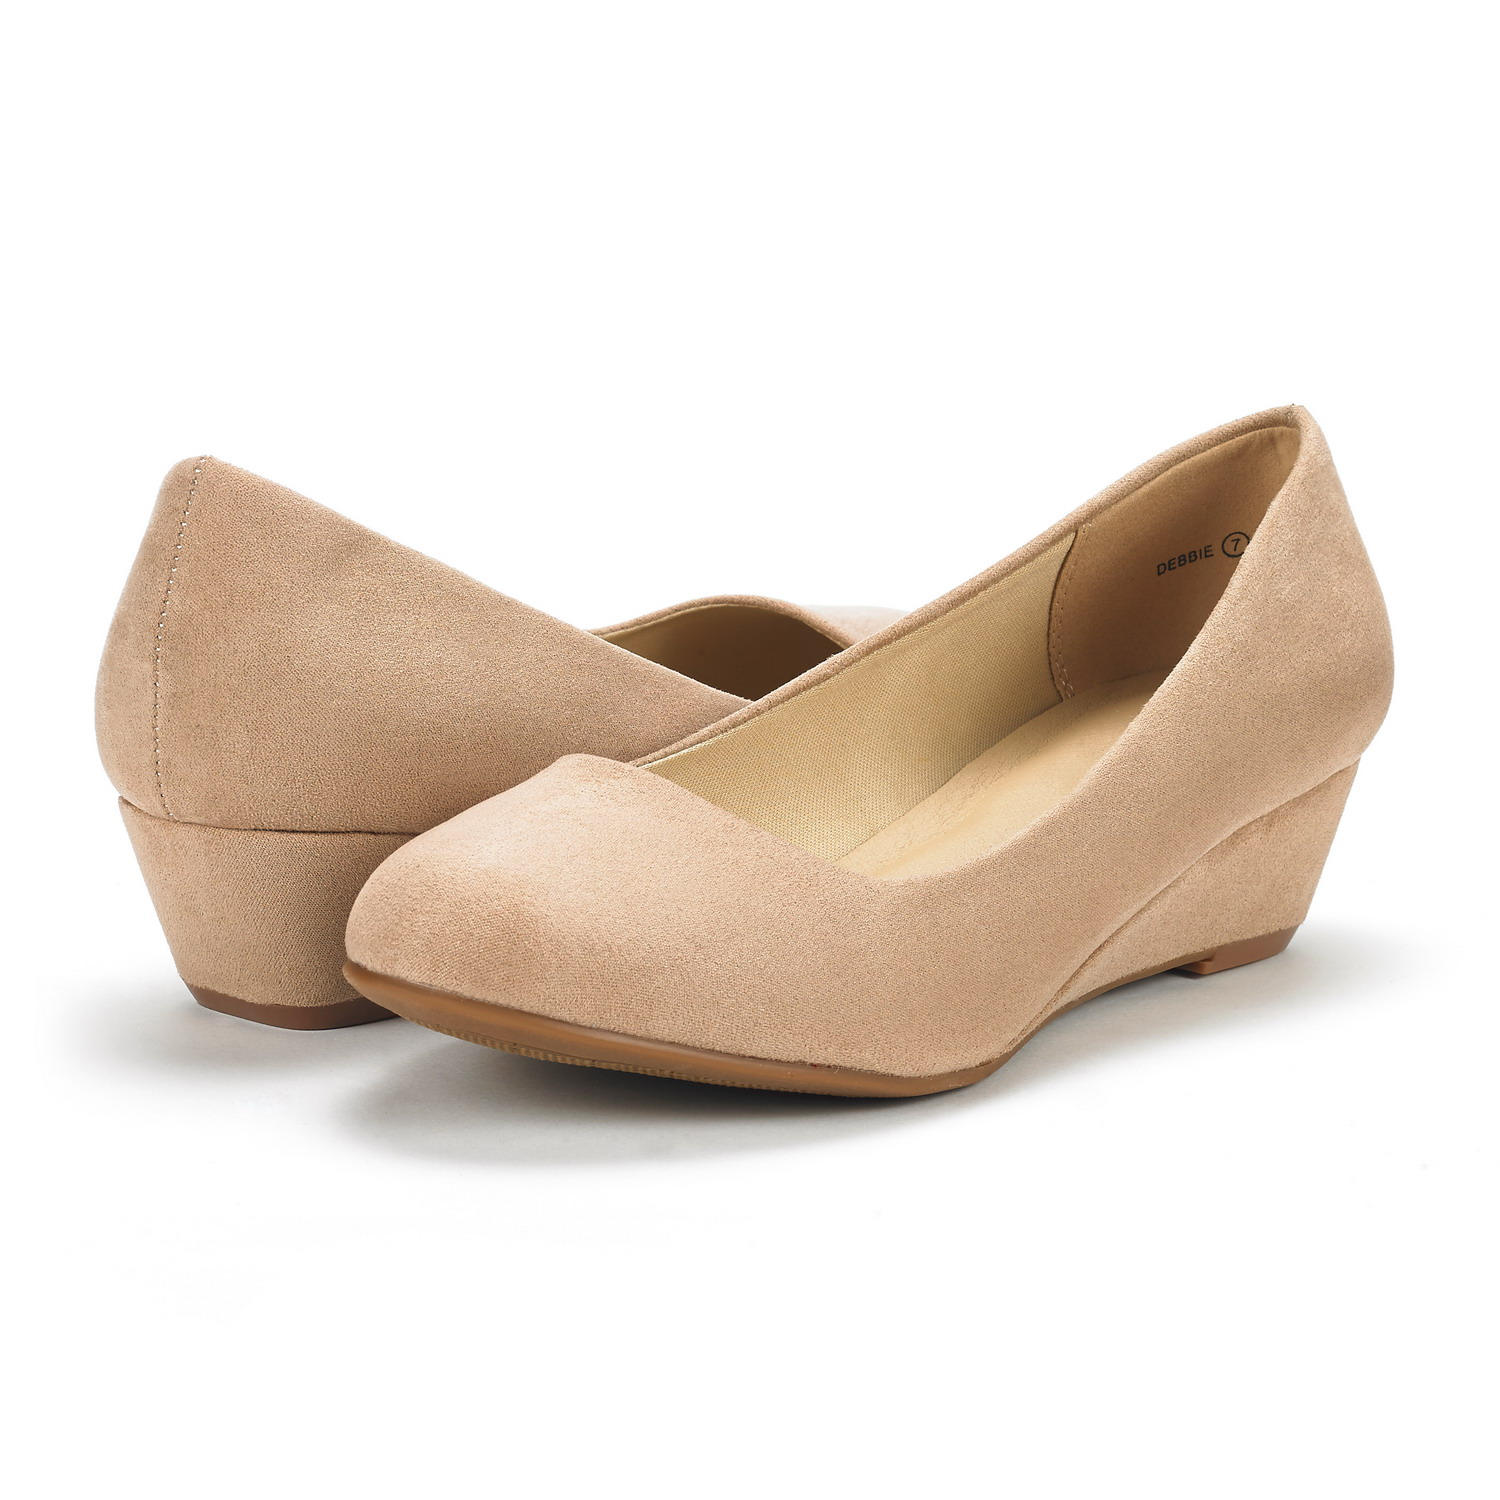 DREAM-PAIRS-Women-039-s-Mid-Wedge-Heel-Shoes-Slip-On-Comfort-Dress-Shoes-Suede-PU thumbnail 3